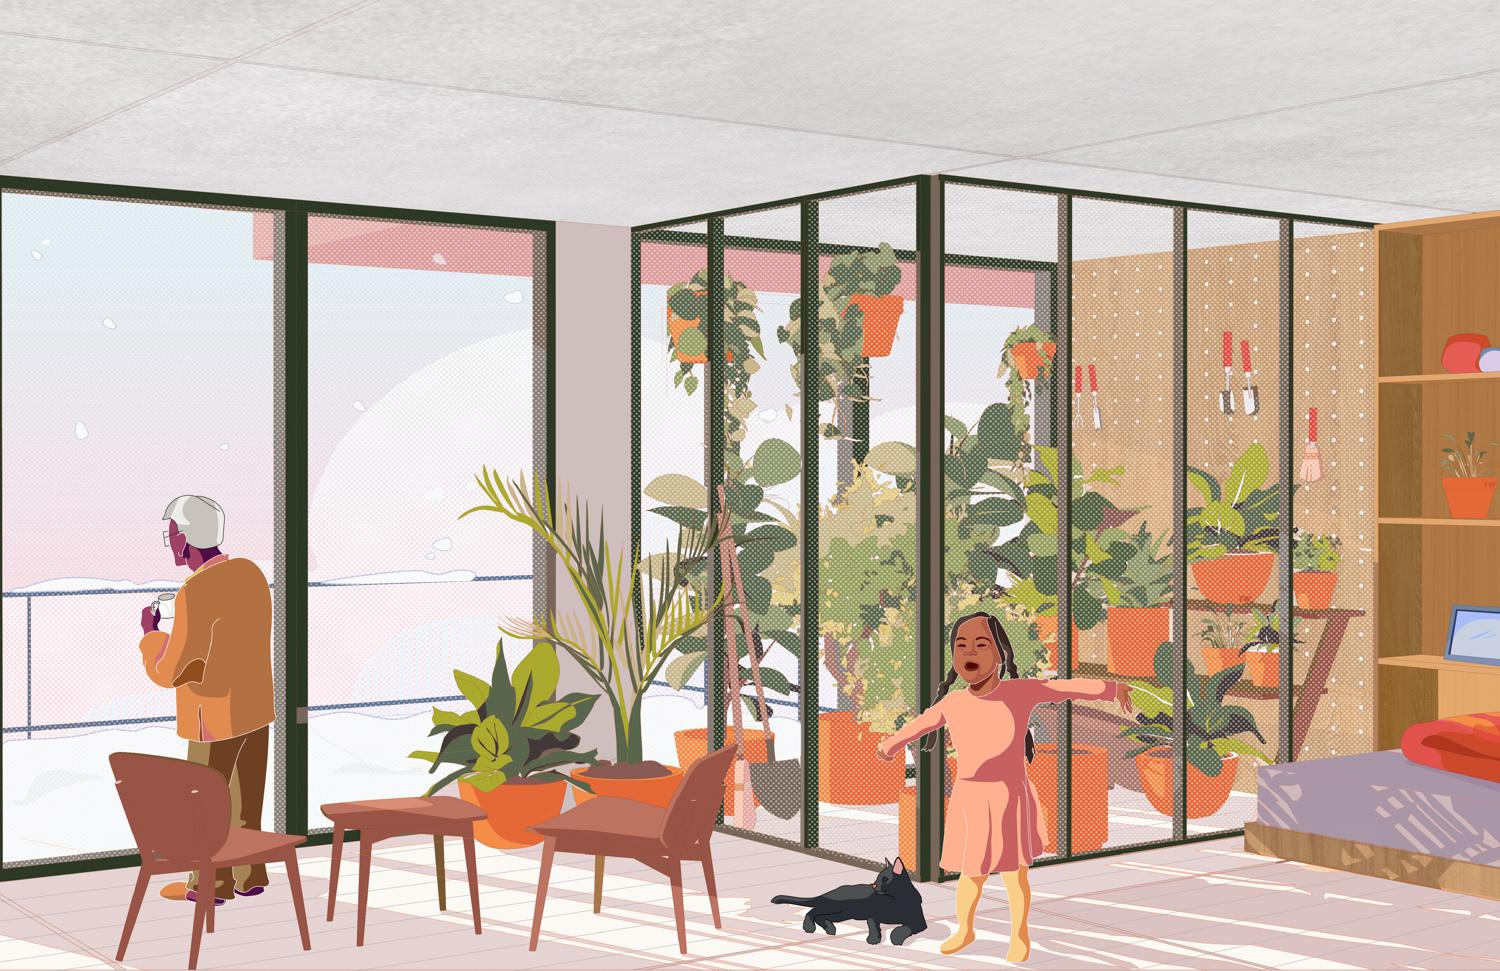 little girl and a grandma in an apartment during winter, with plants in a sunroom